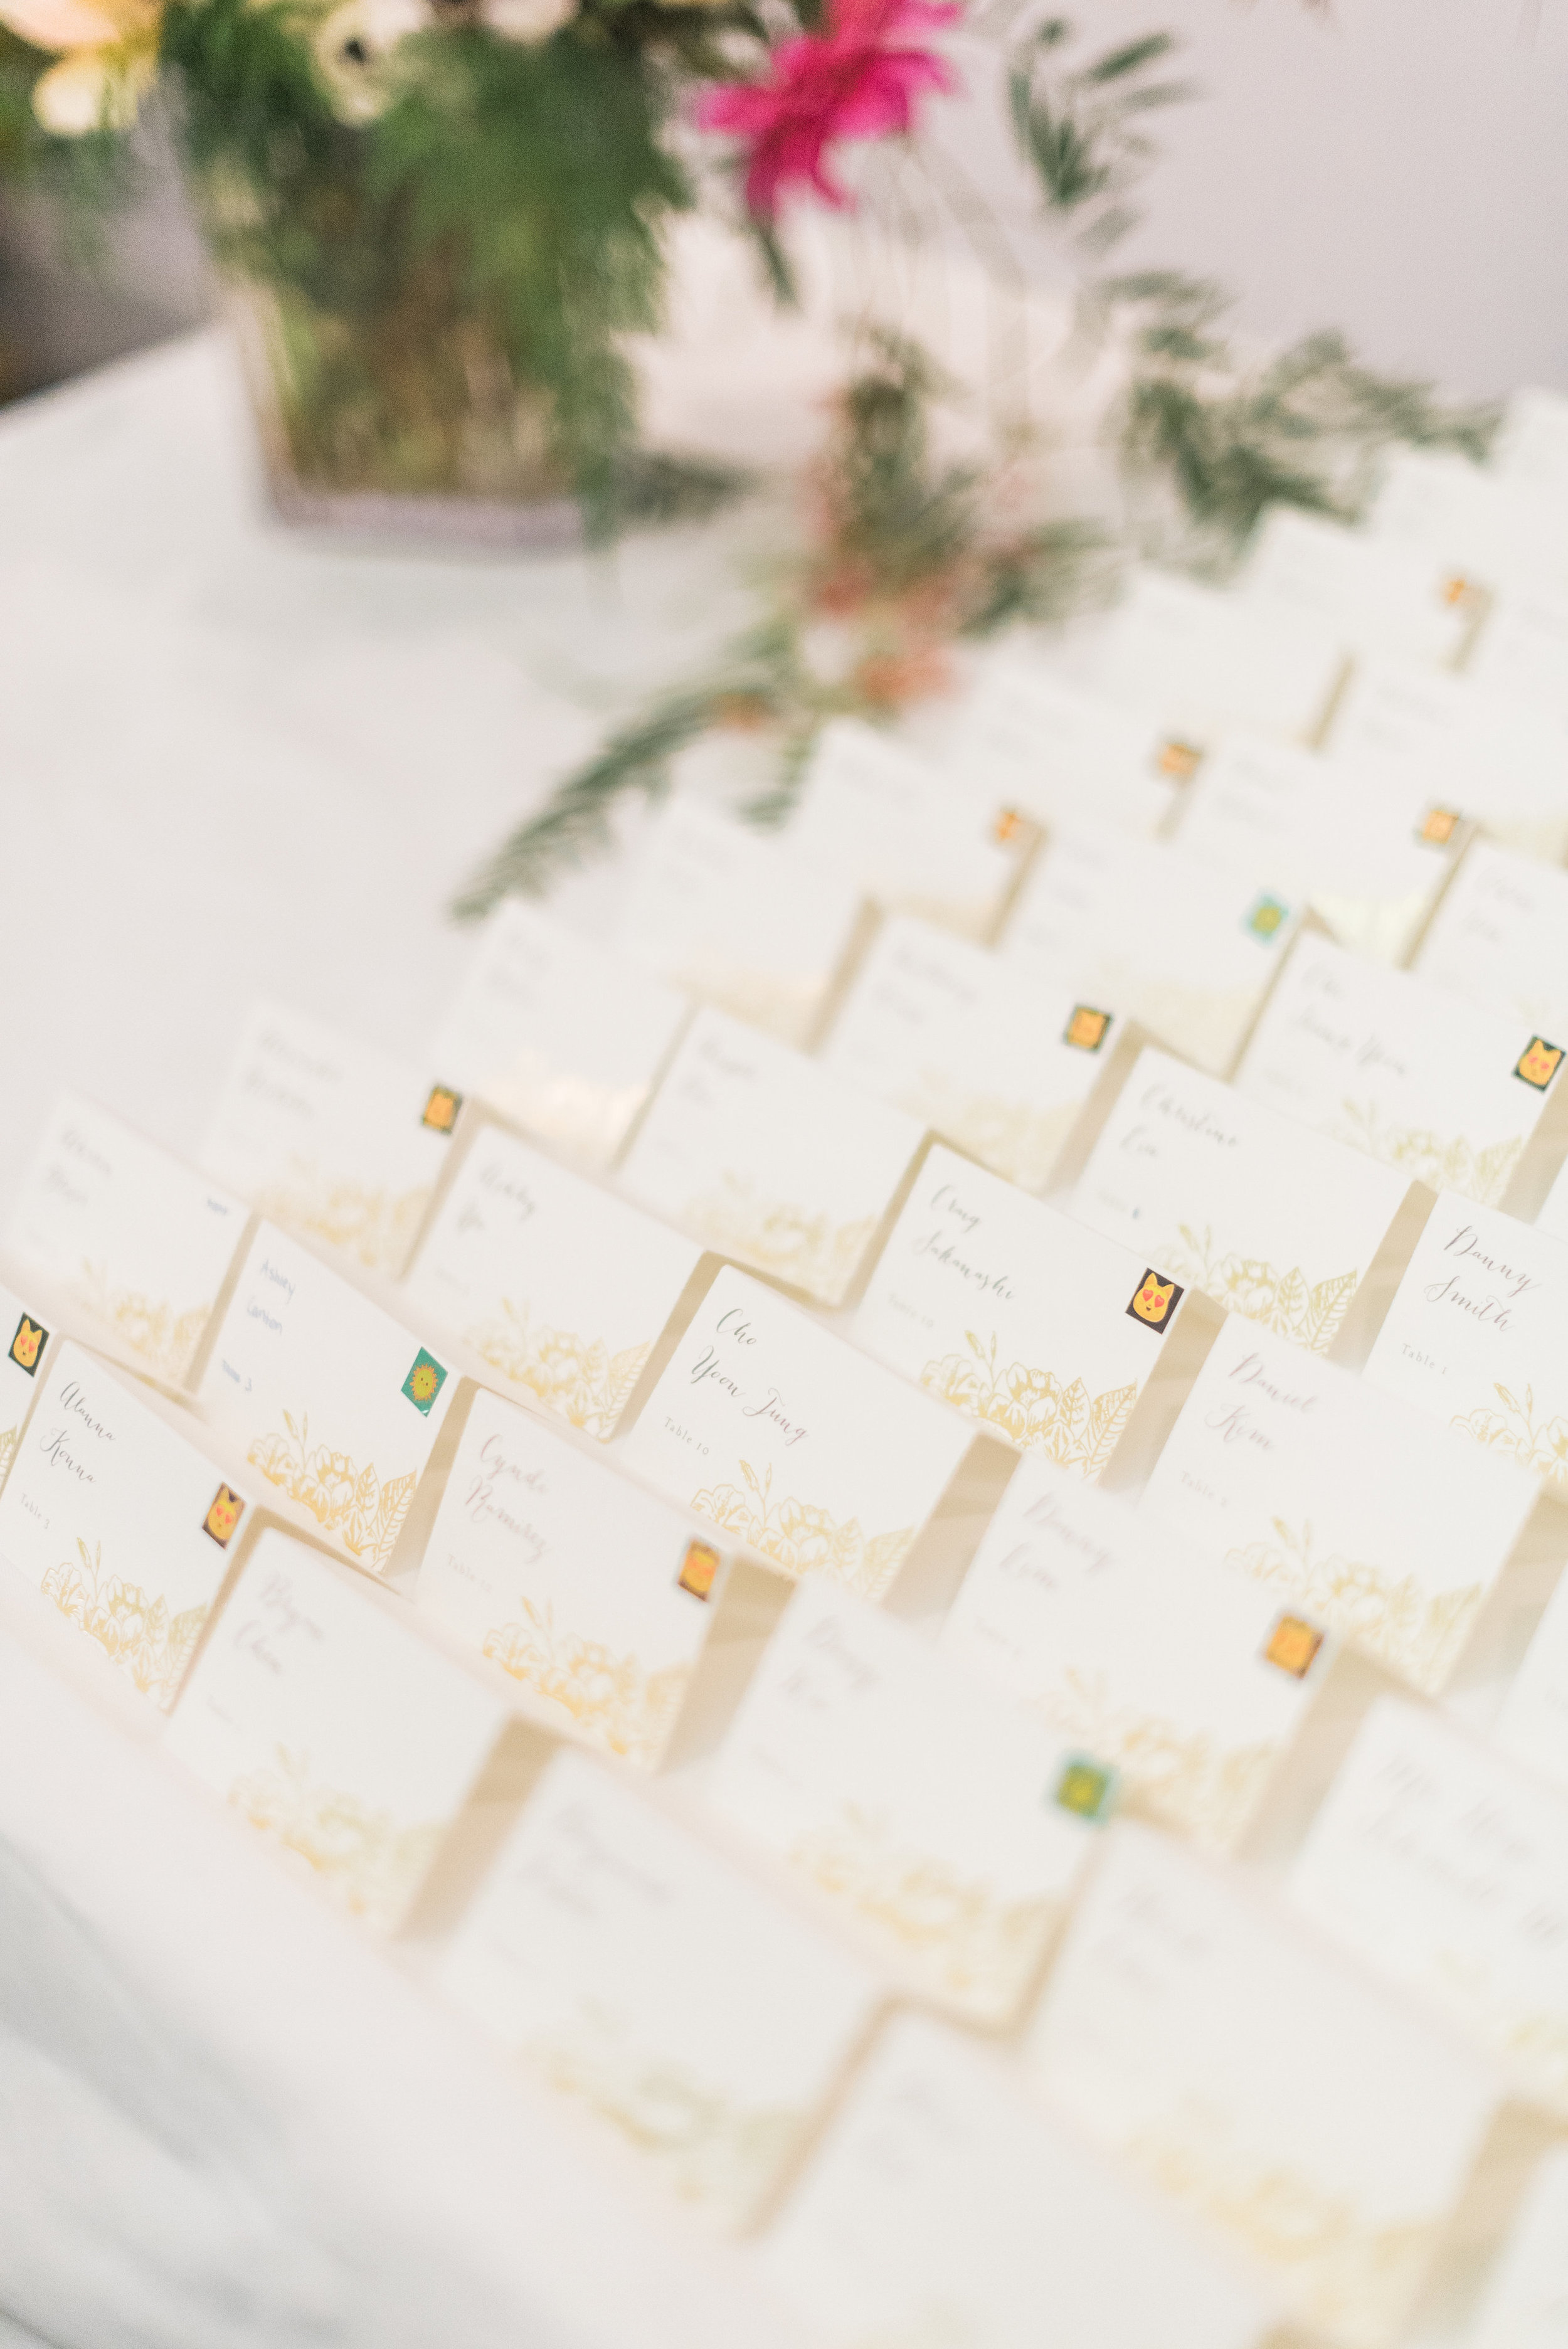 susan and michael wedding with cluster events excort cards.jpg